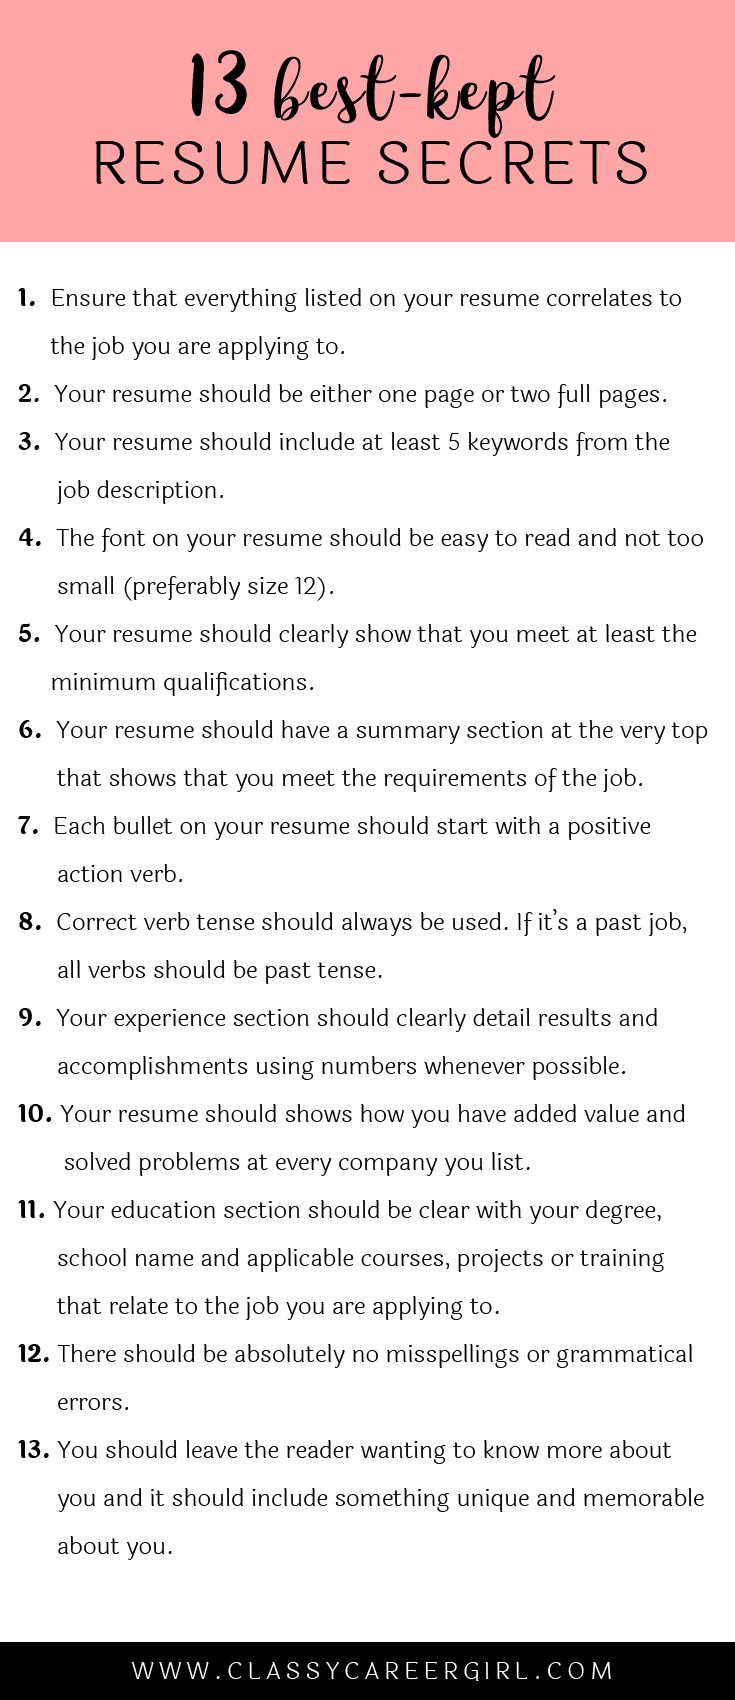 Opposenewapstandardsus  Marvellous  Ideas About Resume On Pinterest  Cv Format Resume Cv And  With Magnificent Some Hiring Managers Will Toss Your Resume Out If You Dont Know These  With Cool Resume Best Practices Also Wordpress Resume Theme In Addition Definition Resume And Assistant Property Manager Resume As Well As How To Write Skills On Resume Additionally Visual Merchandiser Resume From Pinterestcom With Opposenewapstandardsus  Magnificent  Ideas About Resume On Pinterest  Cv Format Resume Cv And  With Cool Some Hiring Managers Will Toss Your Resume Out If You Dont Know These  And Marvellous Resume Best Practices Also Wordpress Resume Theme In Addition Definition Resume From Pinterestcom